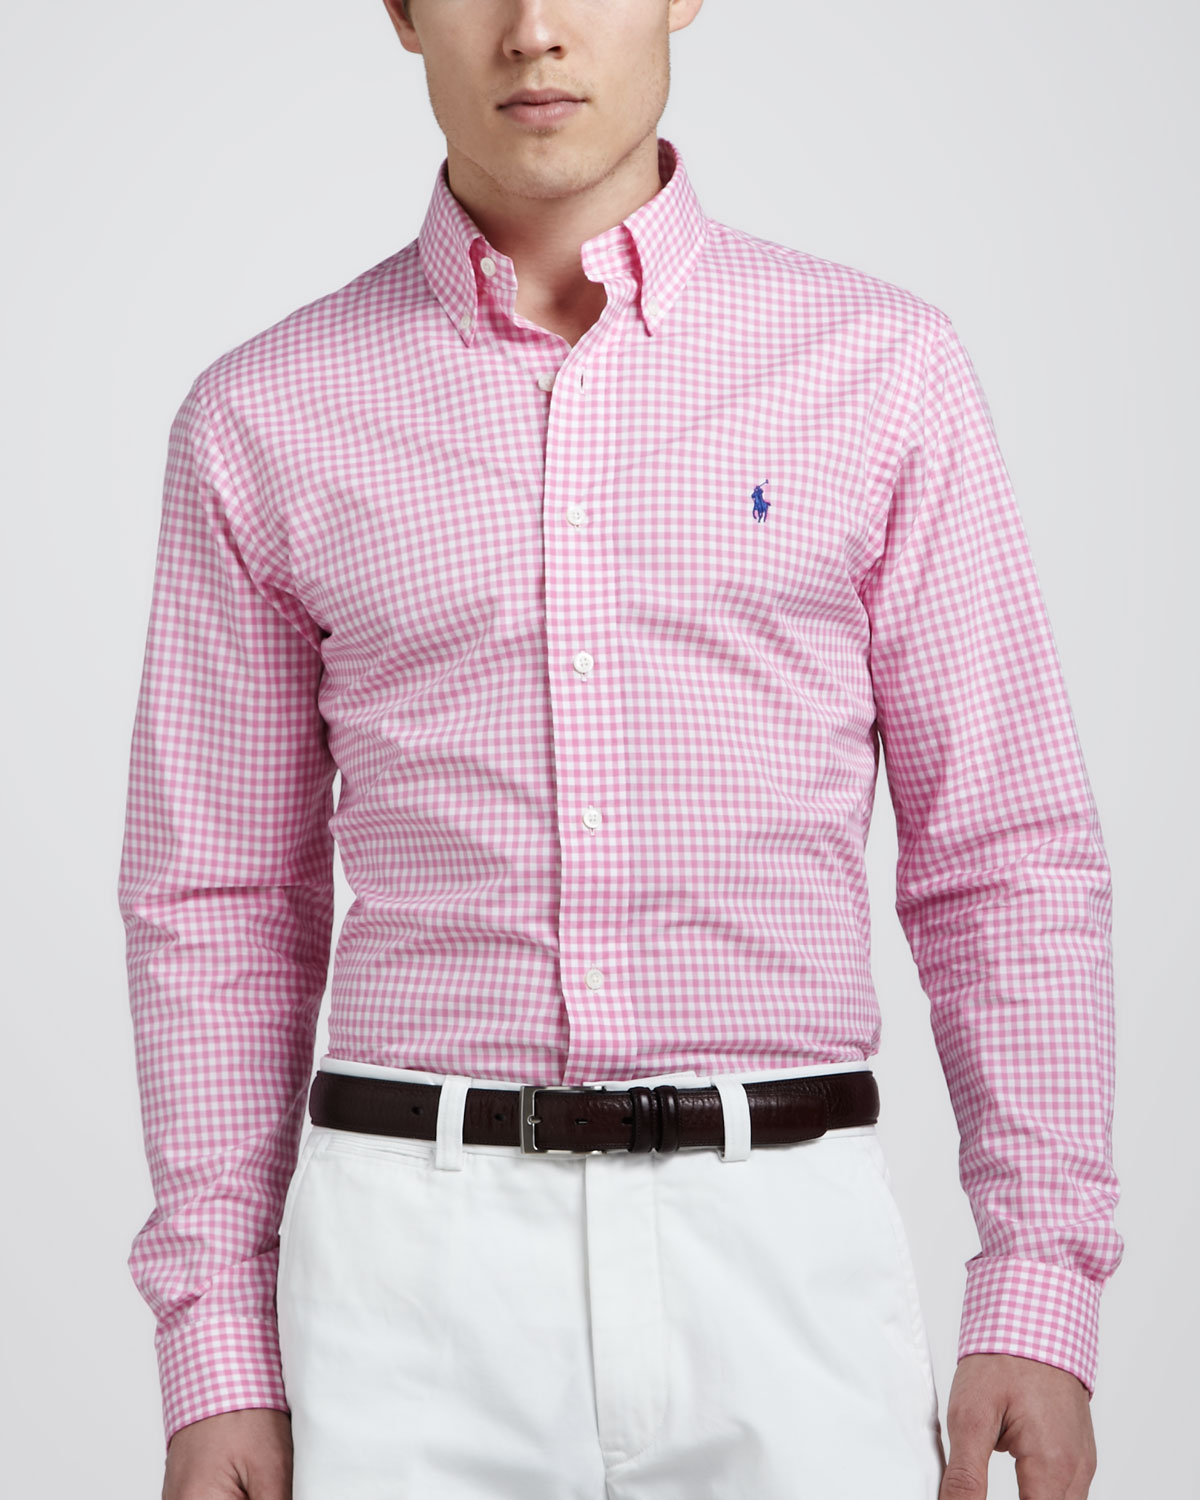 polo ralph lauren customfit gingham shirt pinkwhite in